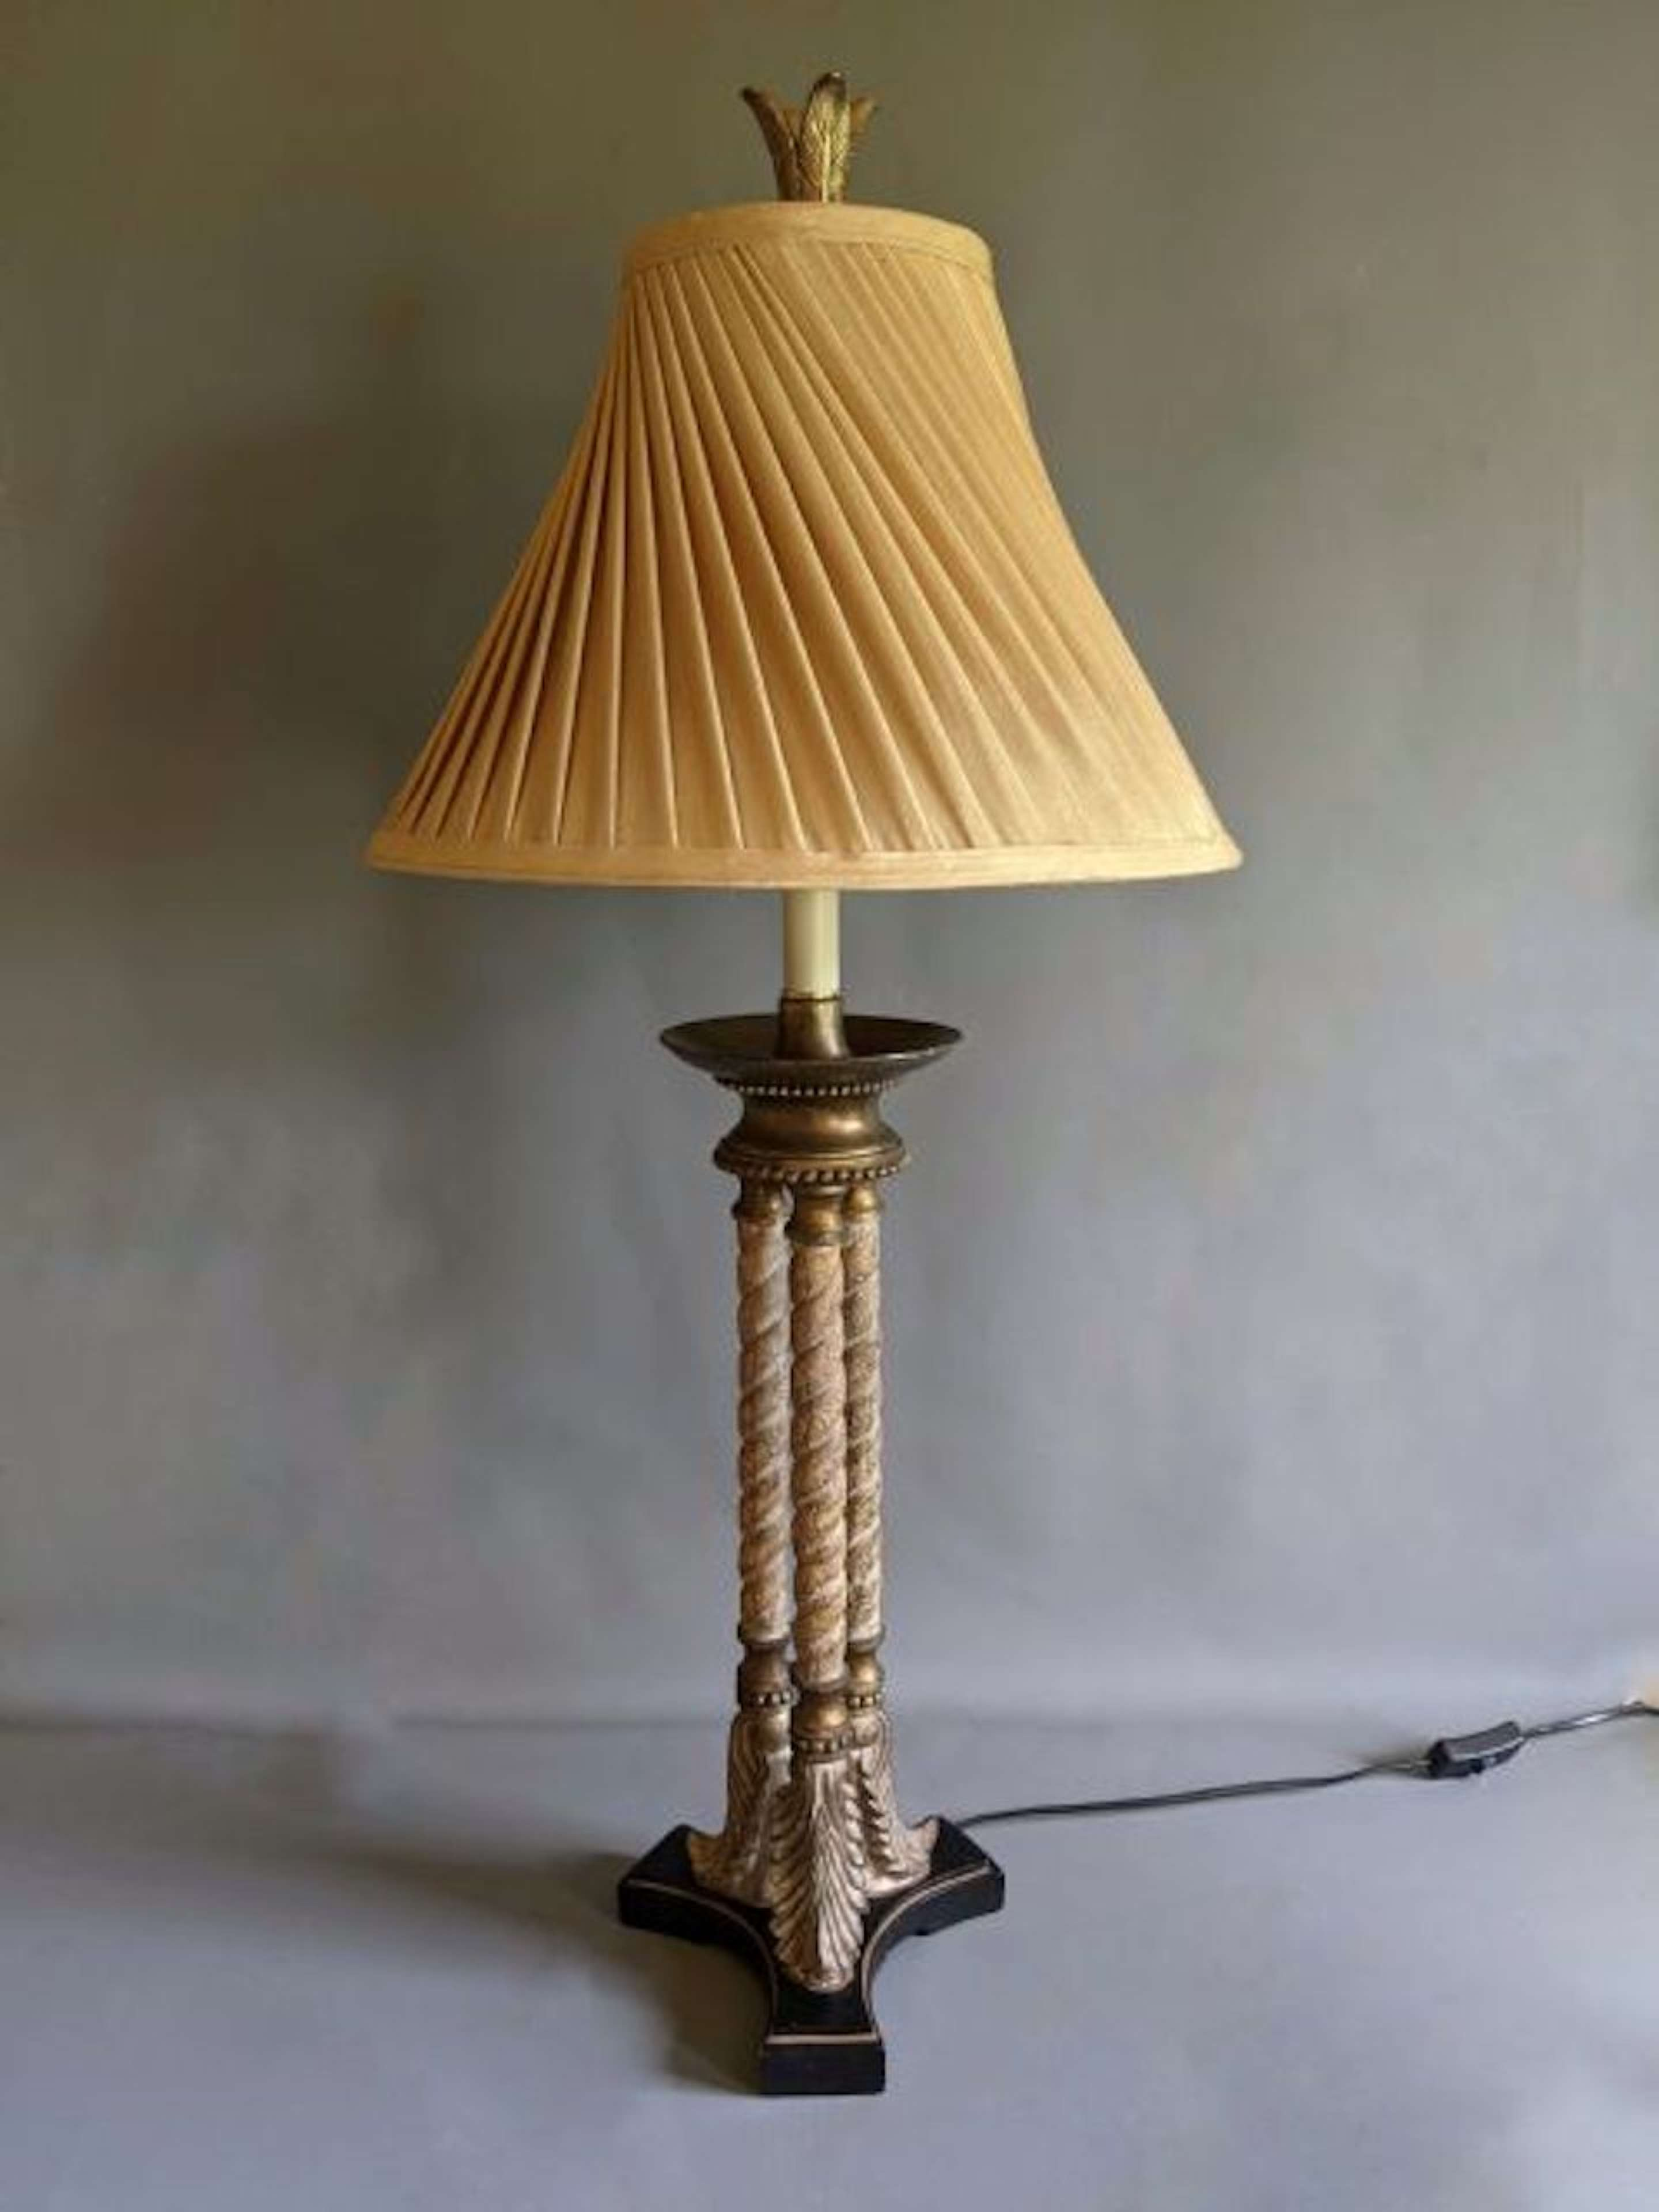 Unique Early 20th Century Table Lamp